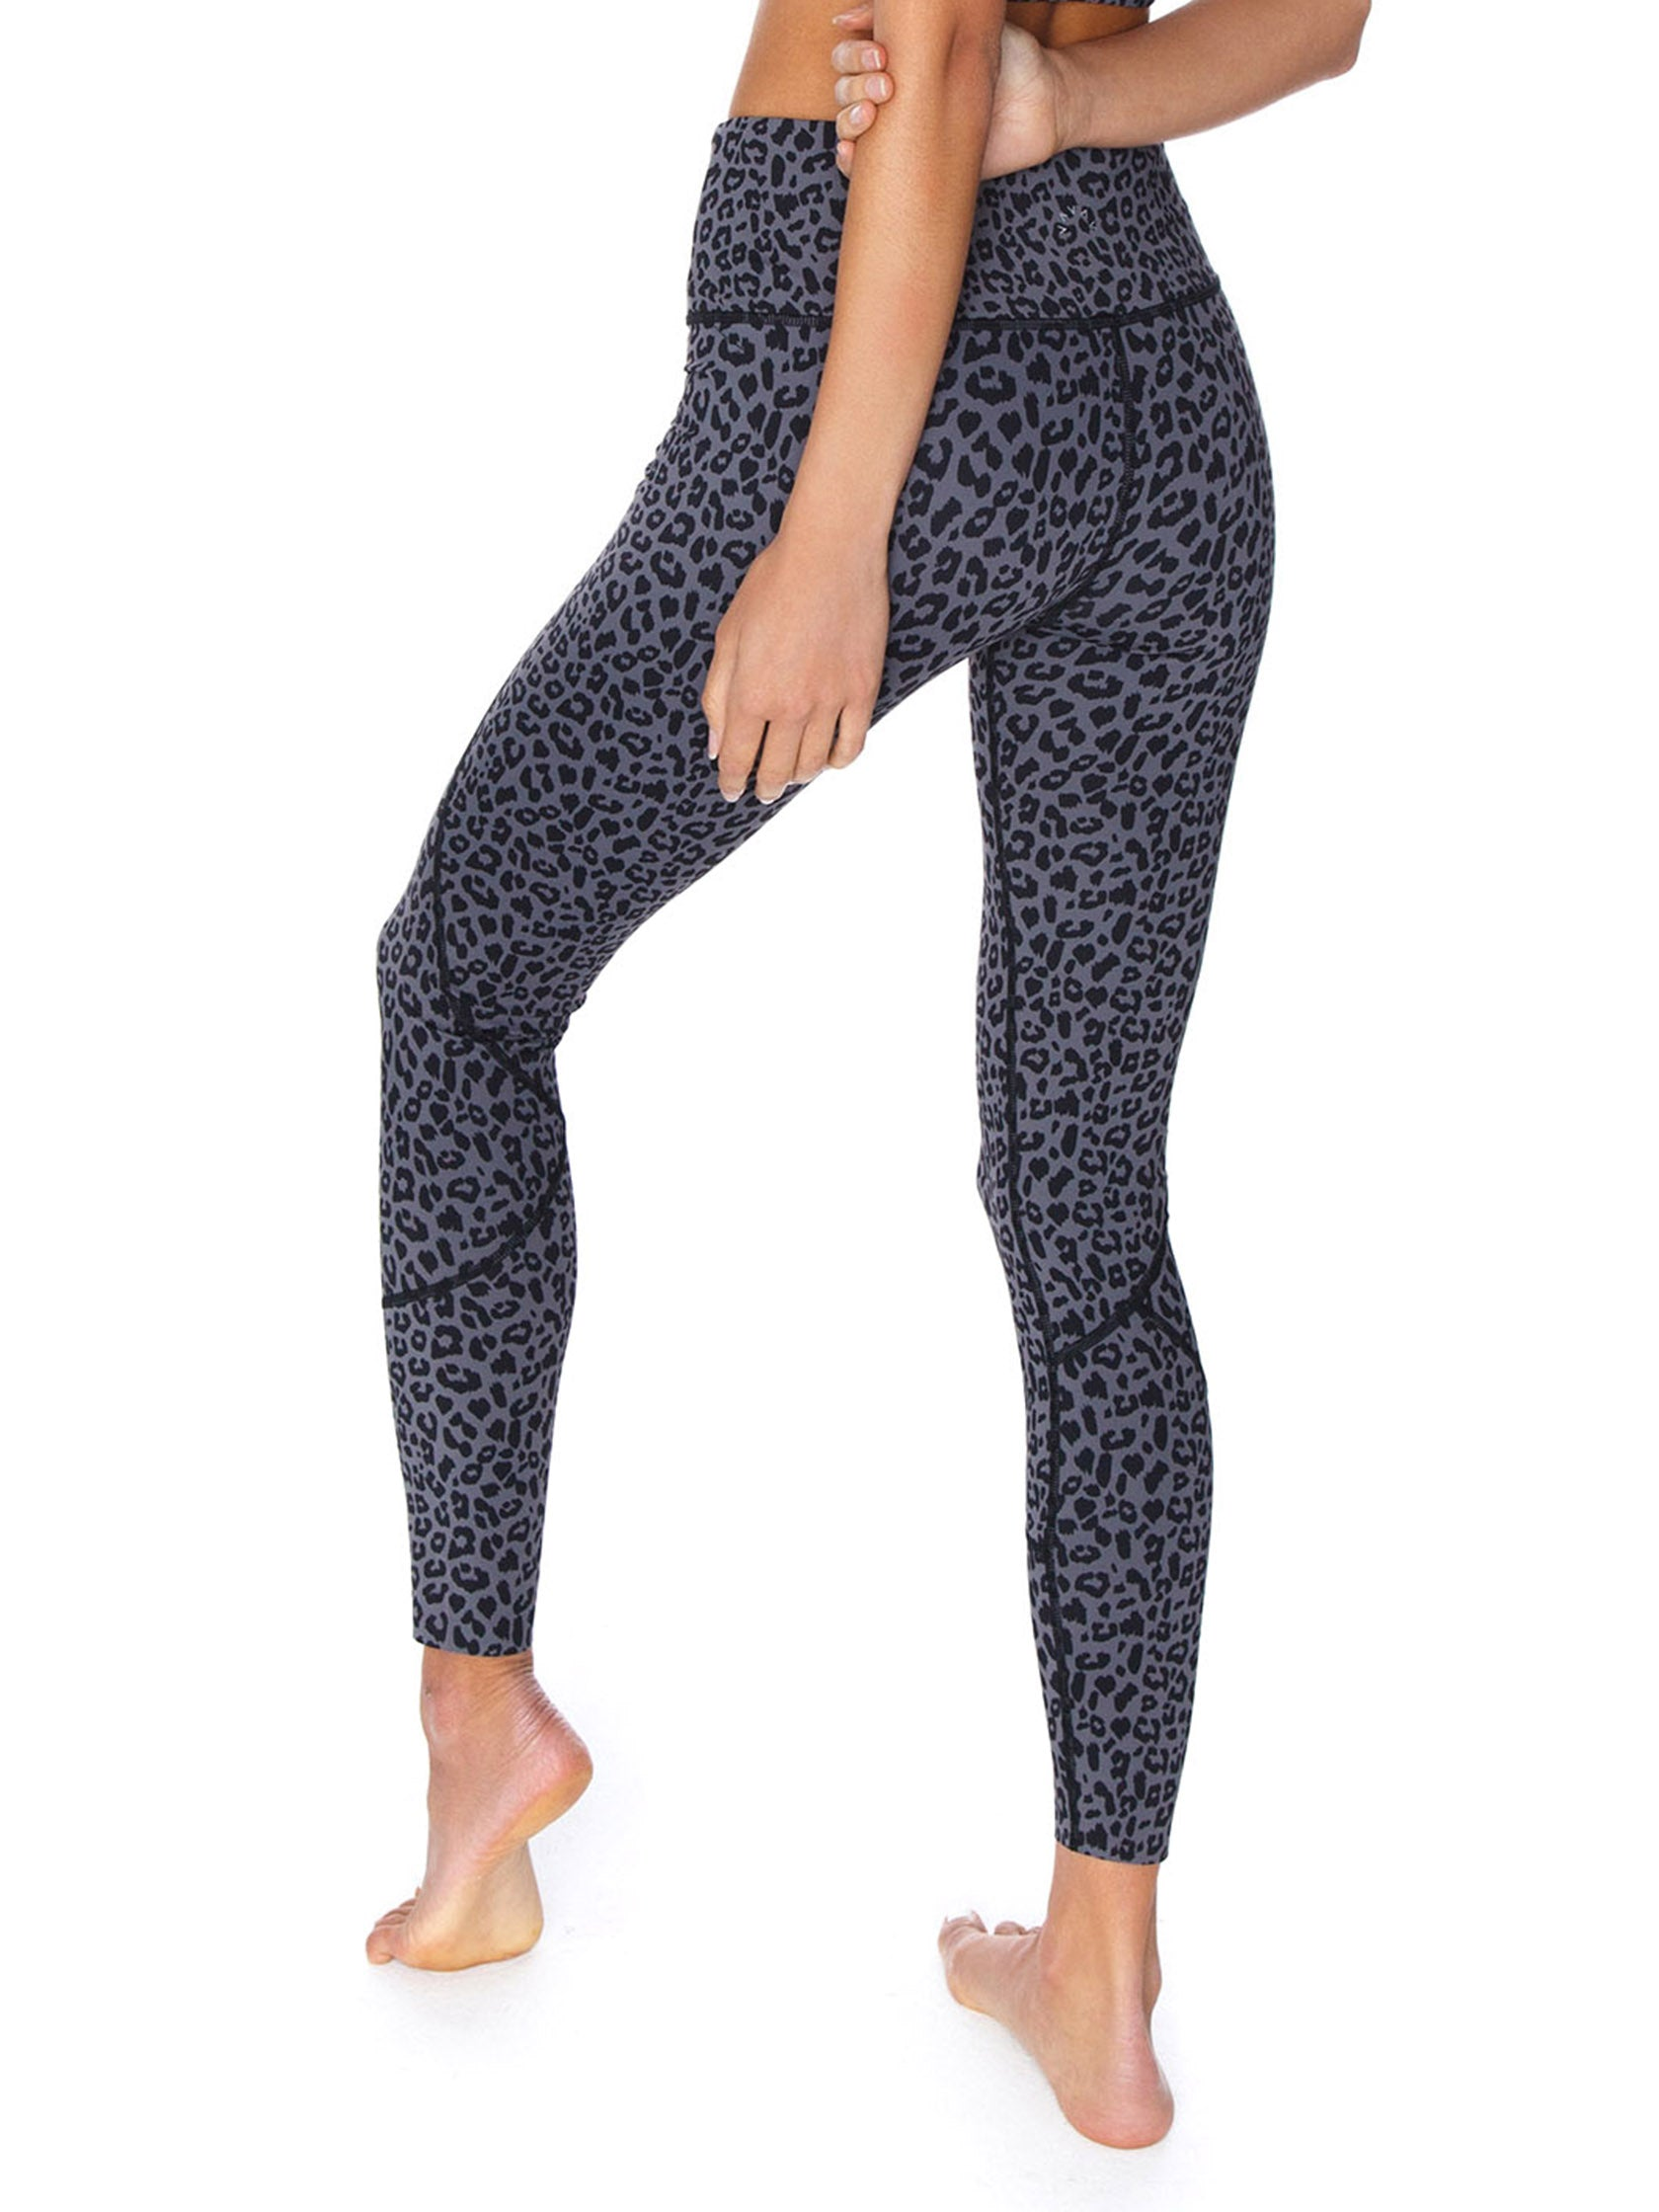 Women outfit in a leggings rental from VARLEY called Bedford Tight